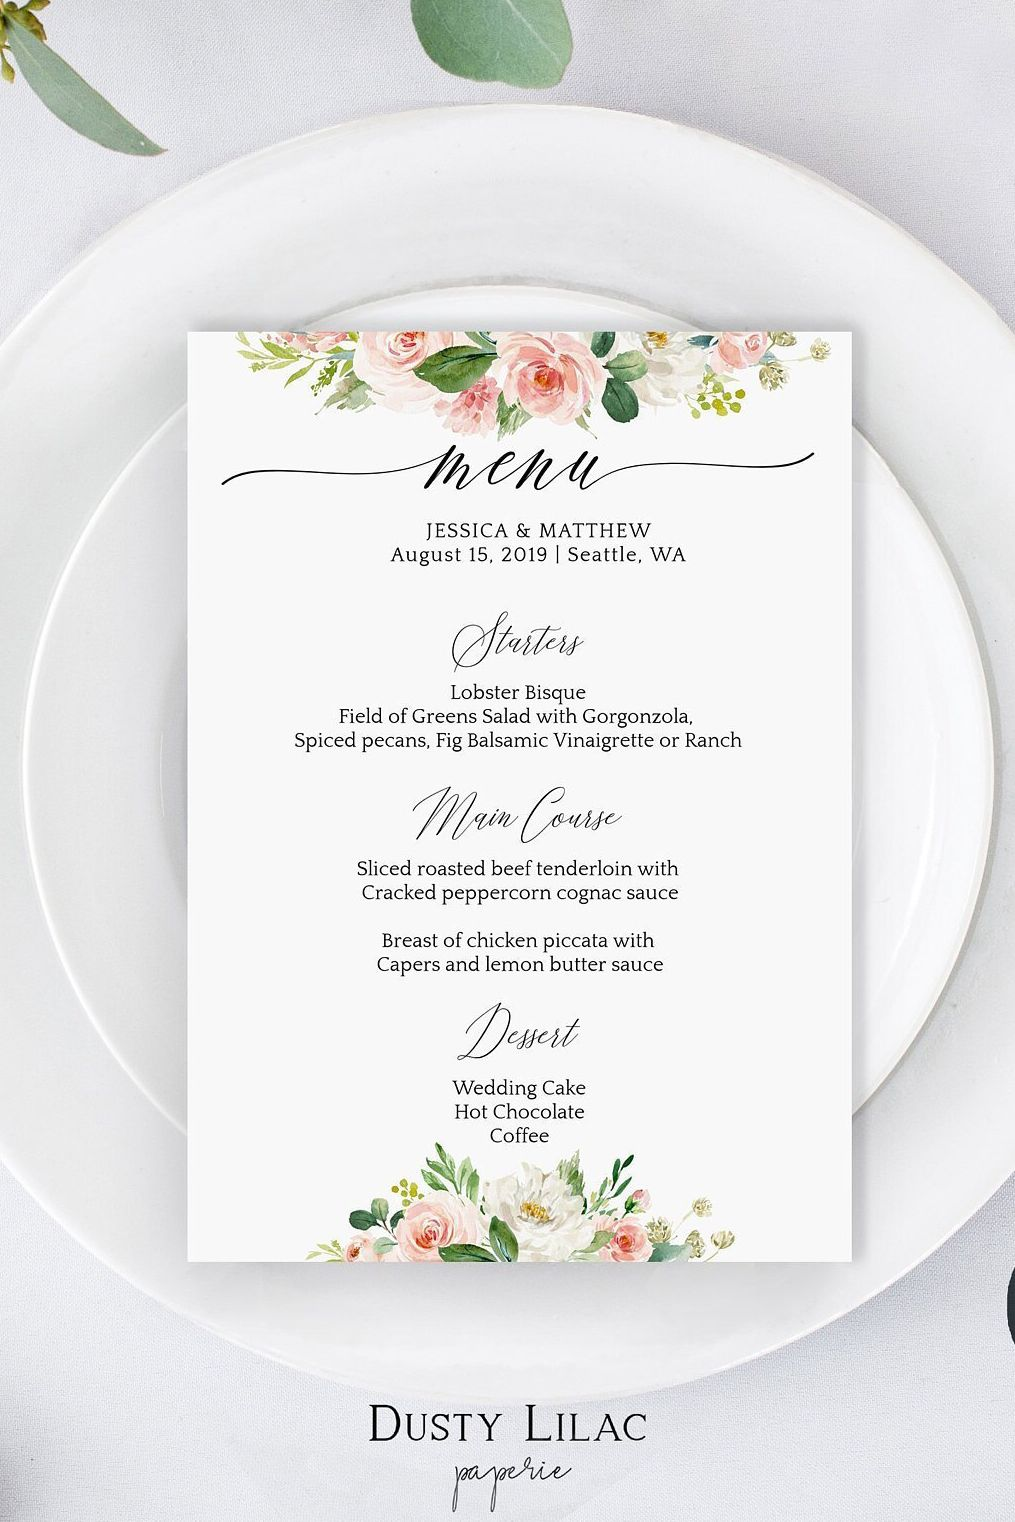 Blush Pink Floral Wedding Menu Template Editable Dinner Menu Etsy Menu Card Template Wedding Menu Template Wedding Menu Cards